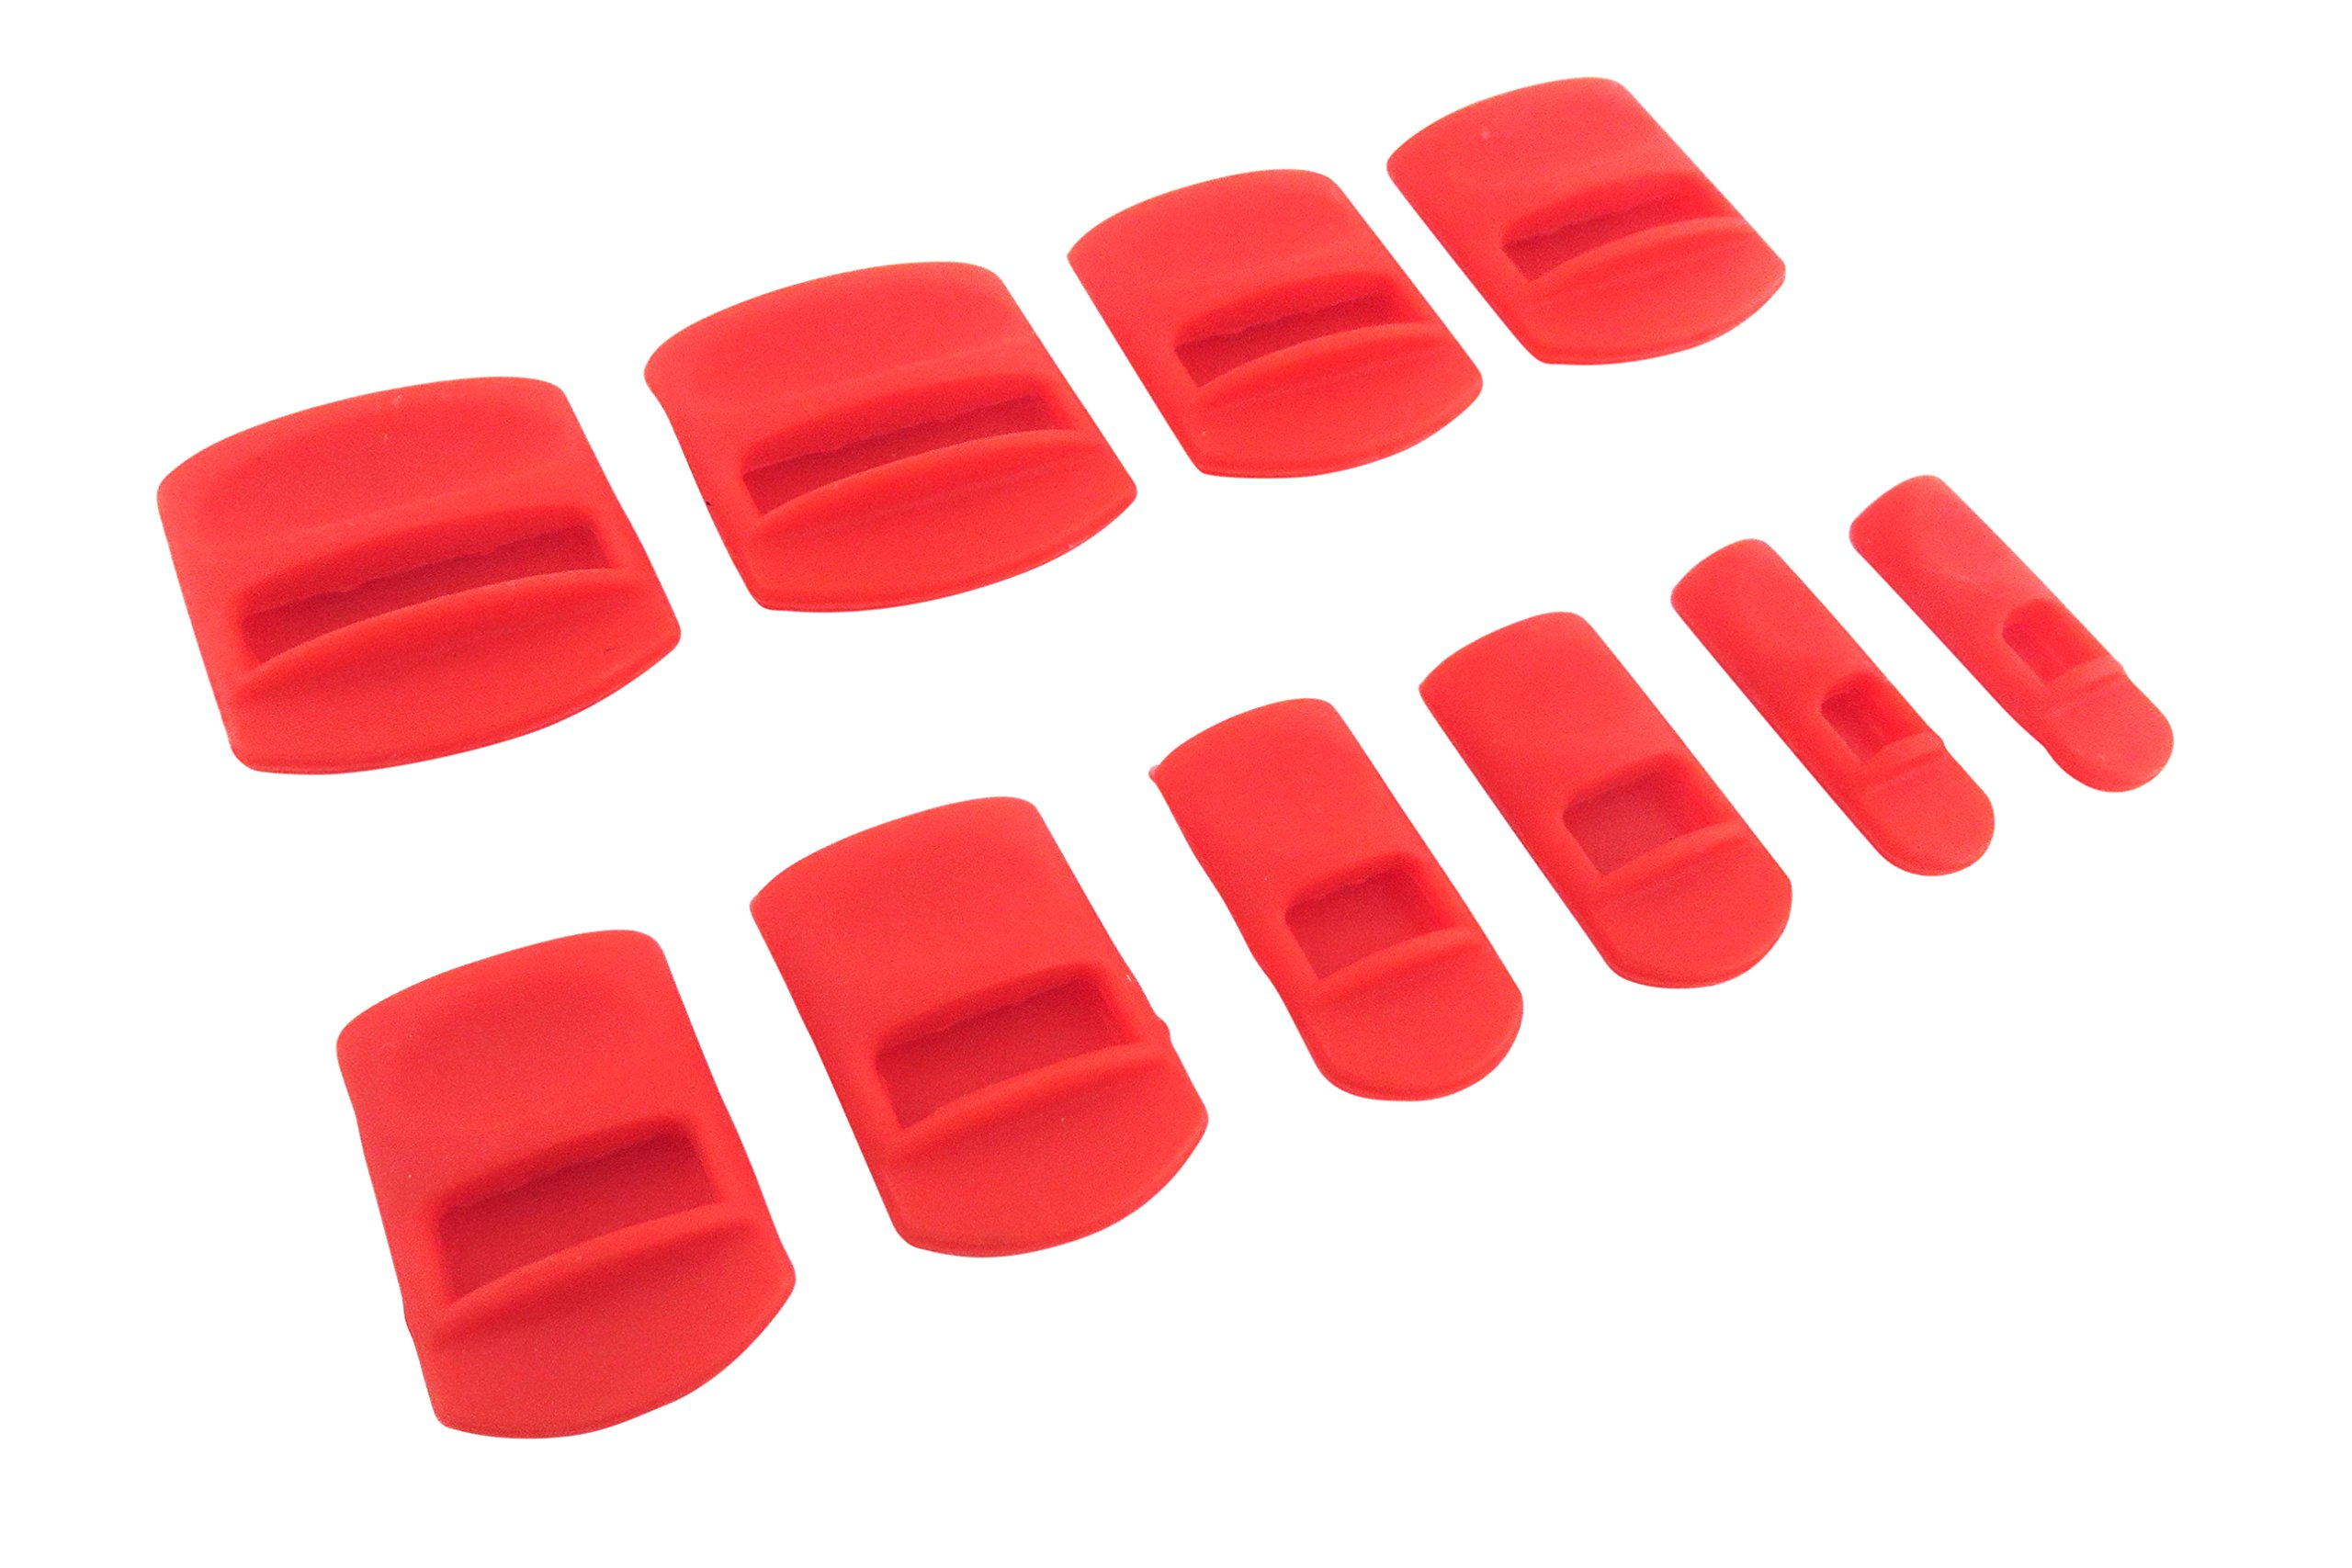 """Taytools 101202 10 Piece Soft Silicone Chisel Edge Guard Set for Chisels 1/8"""" to 1-1/4"""""""